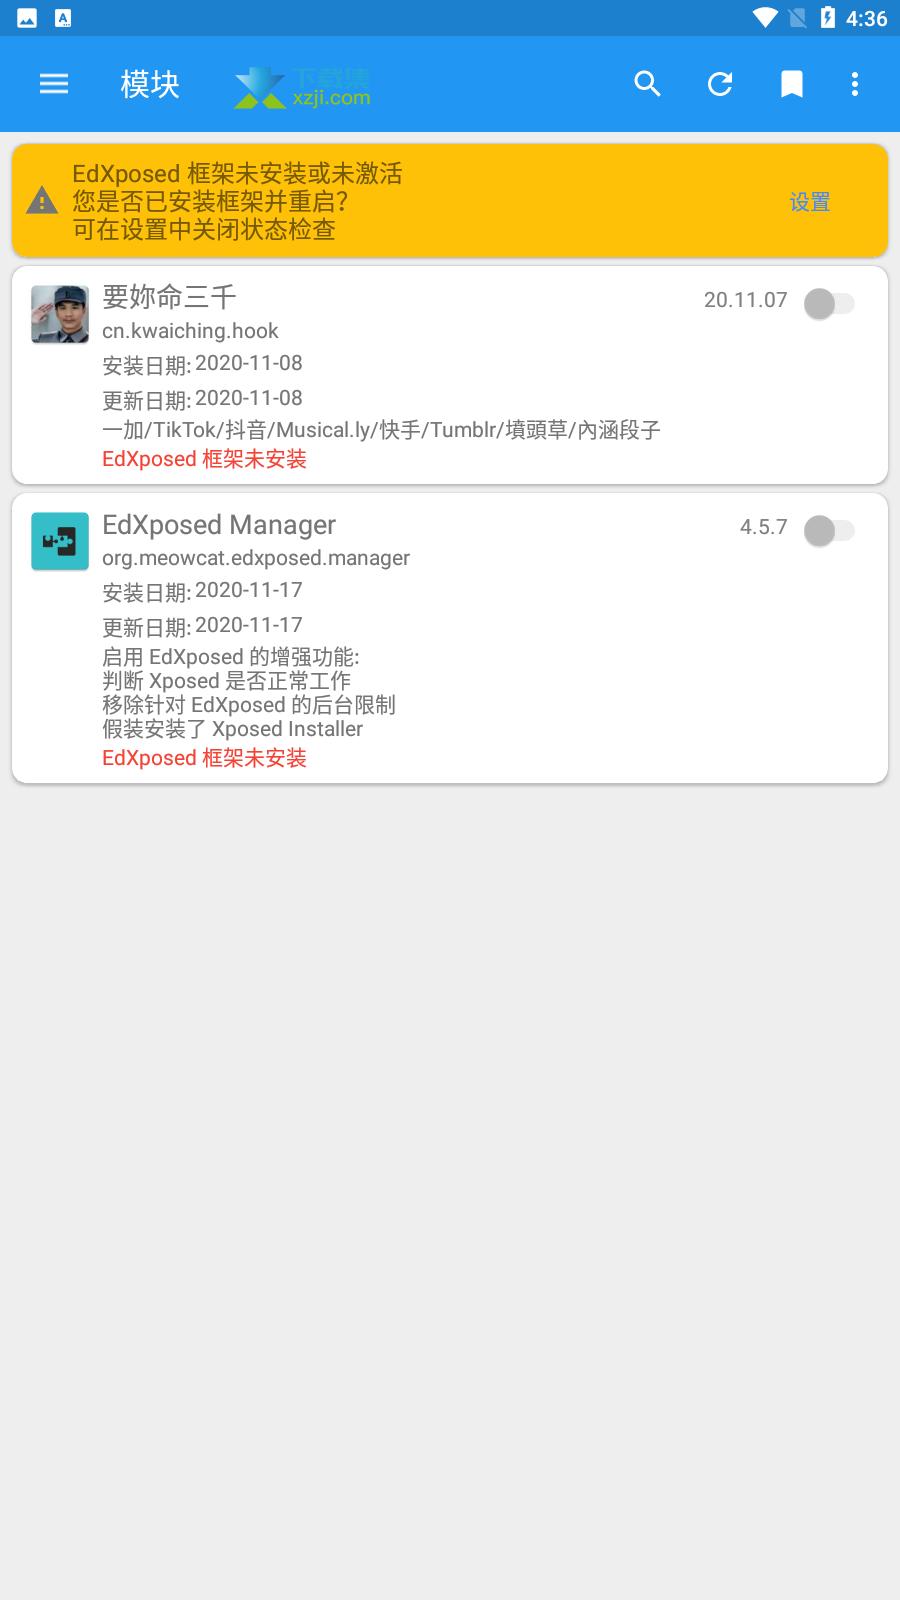 EdXposed Manager界面2